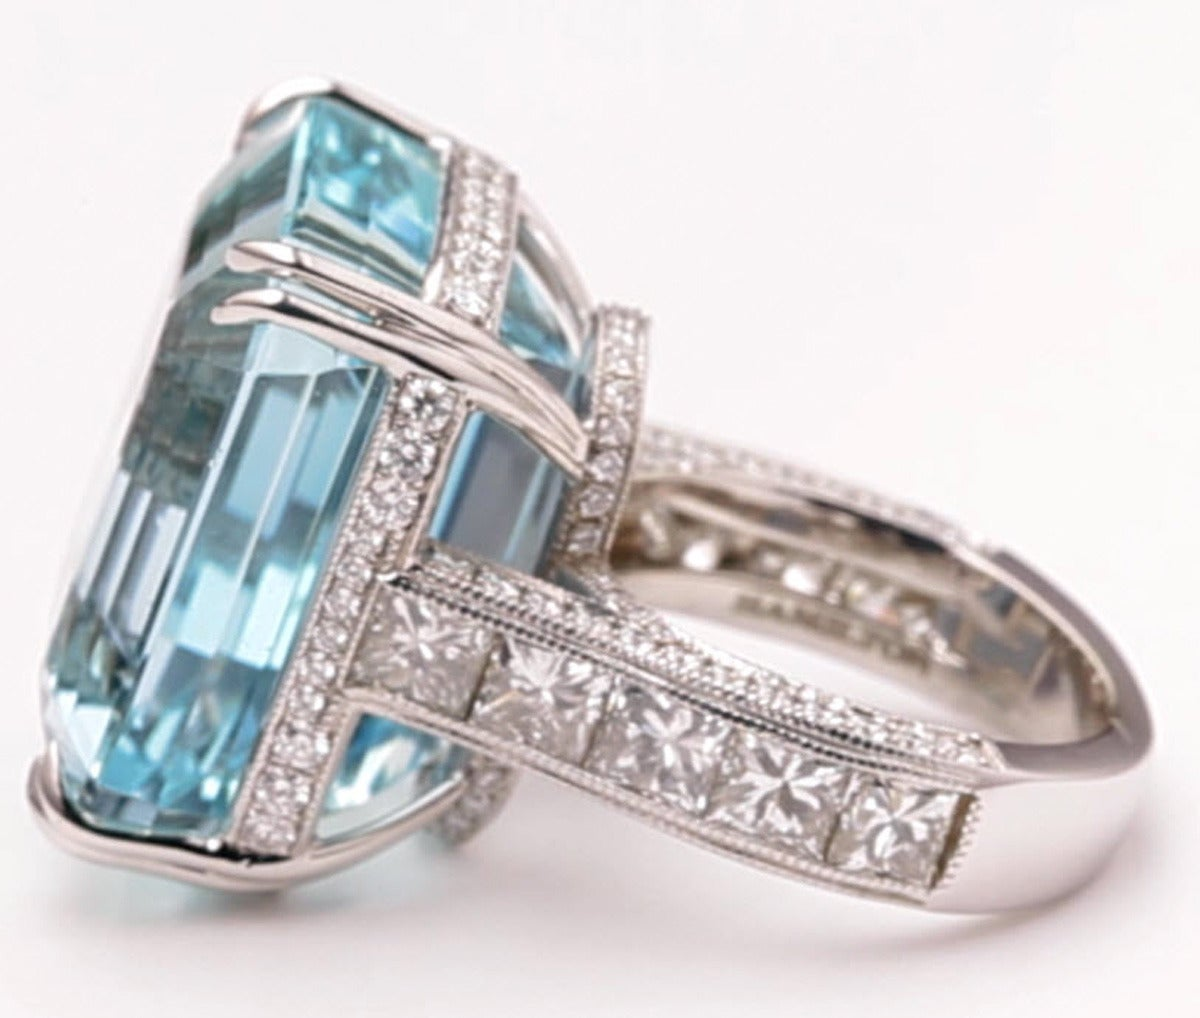 38.57 Carat Aquamarine Diamond Gold Cocktail Ring In New Condition For Sale In Princeton, NJ